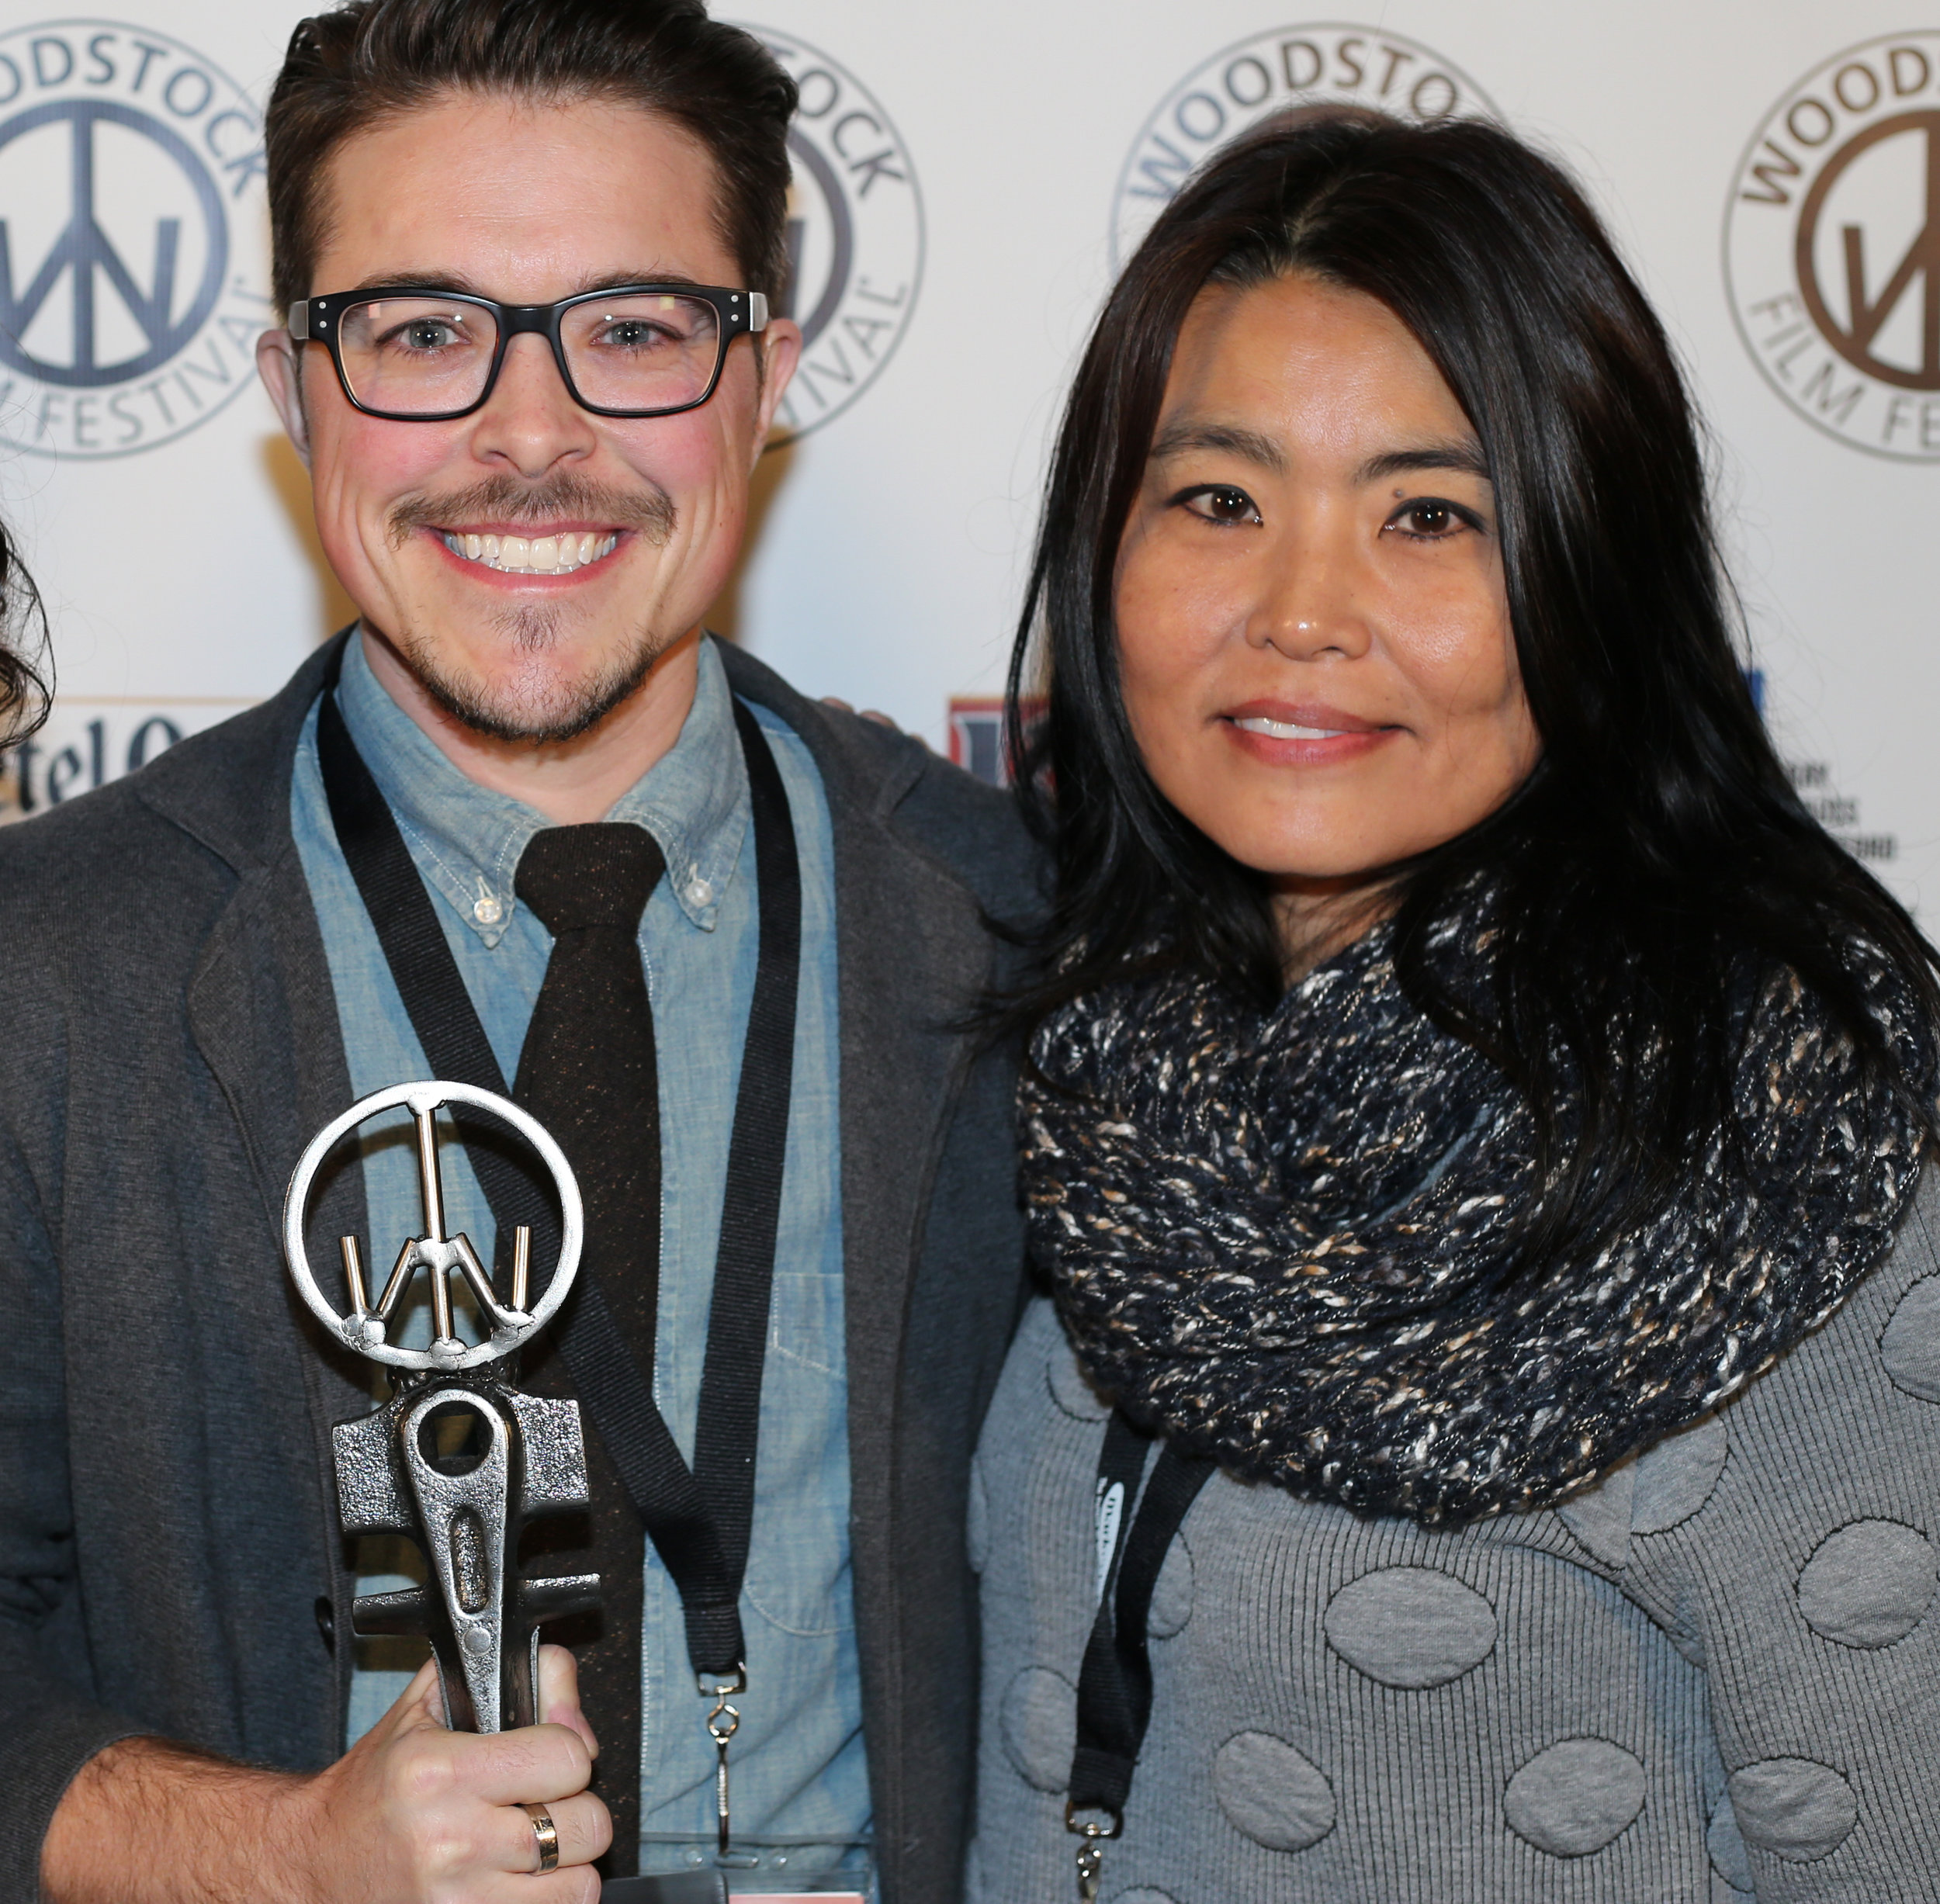 Mako Kamitsuna  (R) with Documentary Editing Award Winner  Kyle Ranson-Walsh  at the 2016 Woodstock Film Festival